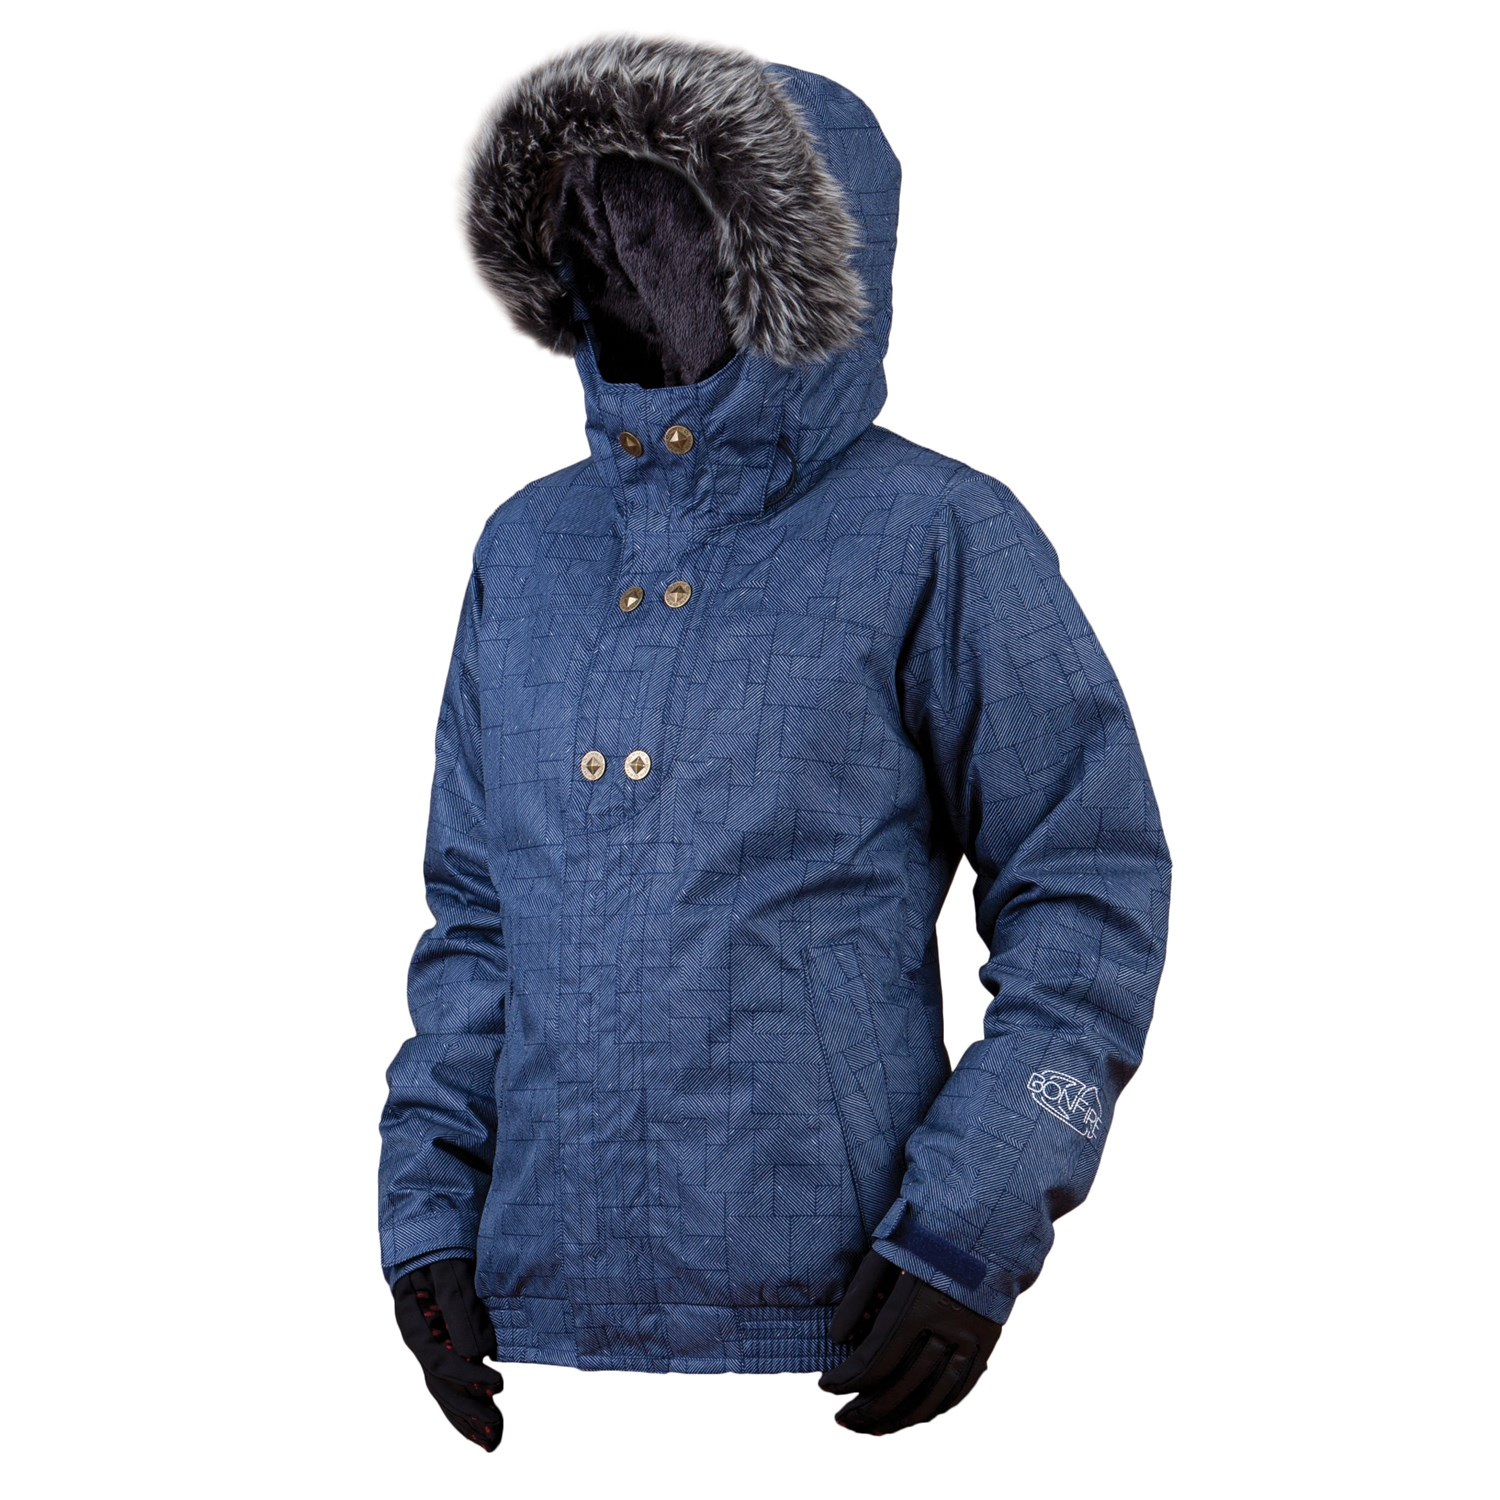 Bonfire womens jacket